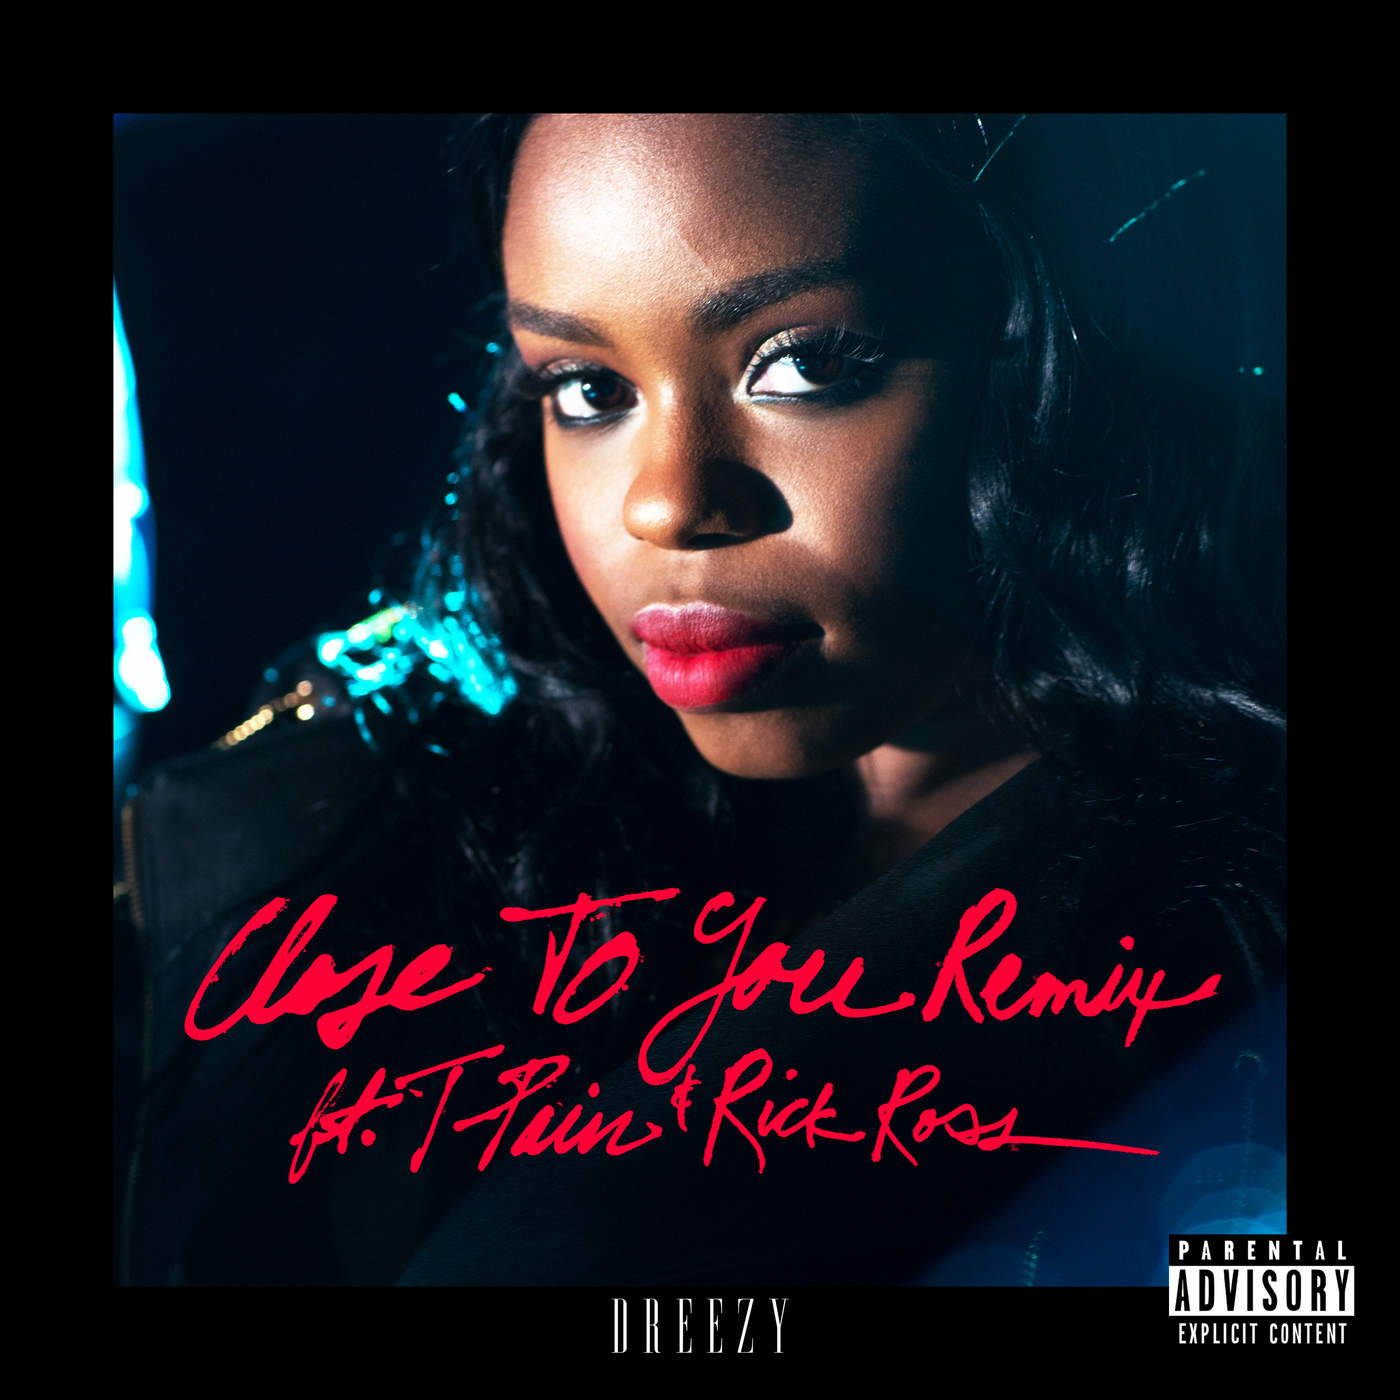 Dreezy - Close to You (Remix) [feat. T-Pain & Rick Ross] - Single Cover